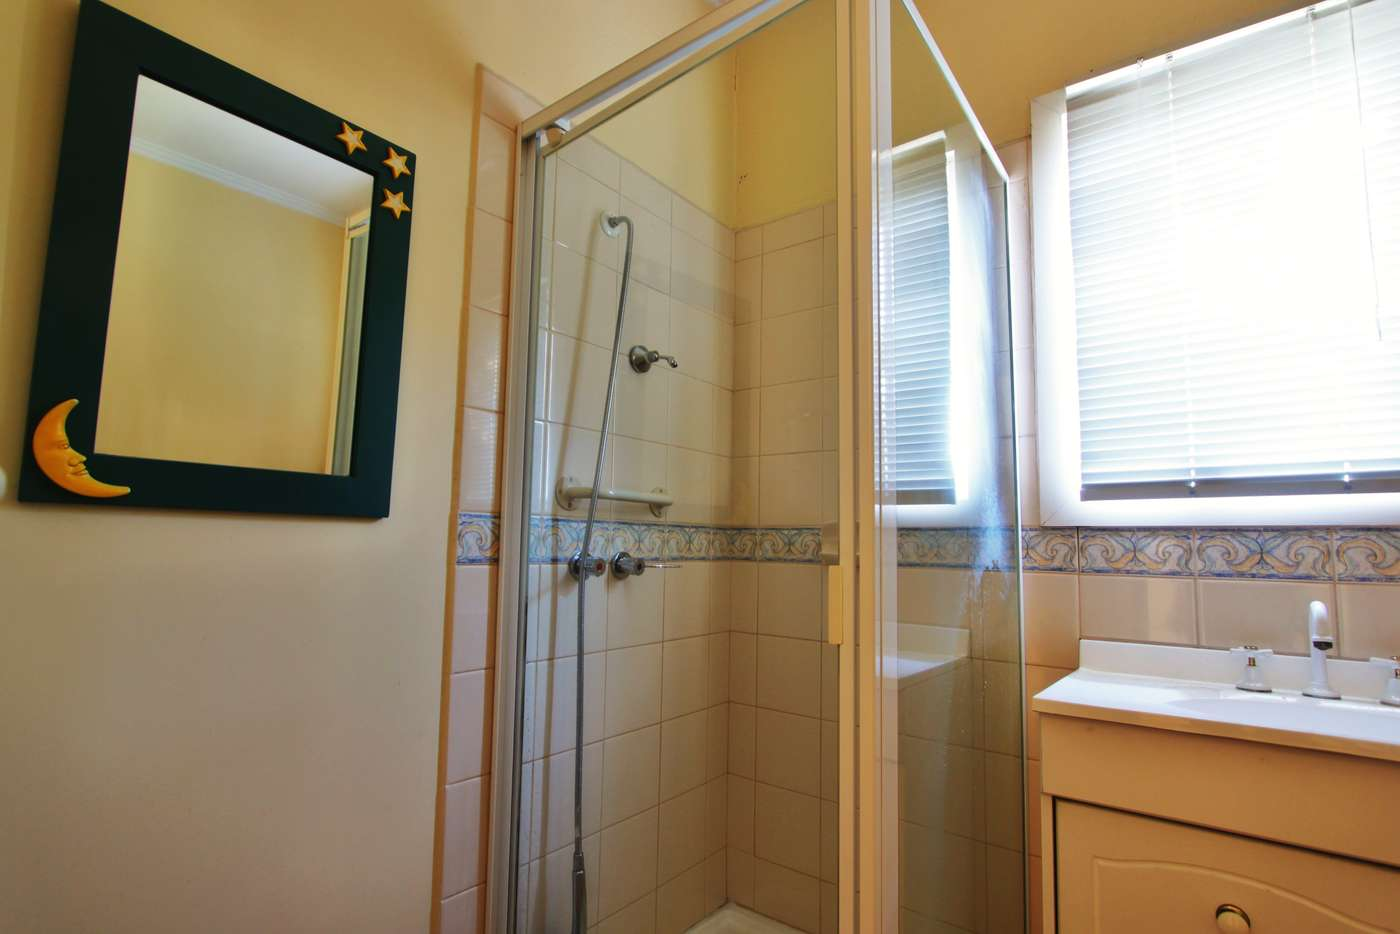 Sixth view of Homely house listing, 21 Leigh Street, Huntingdale VIC 3166